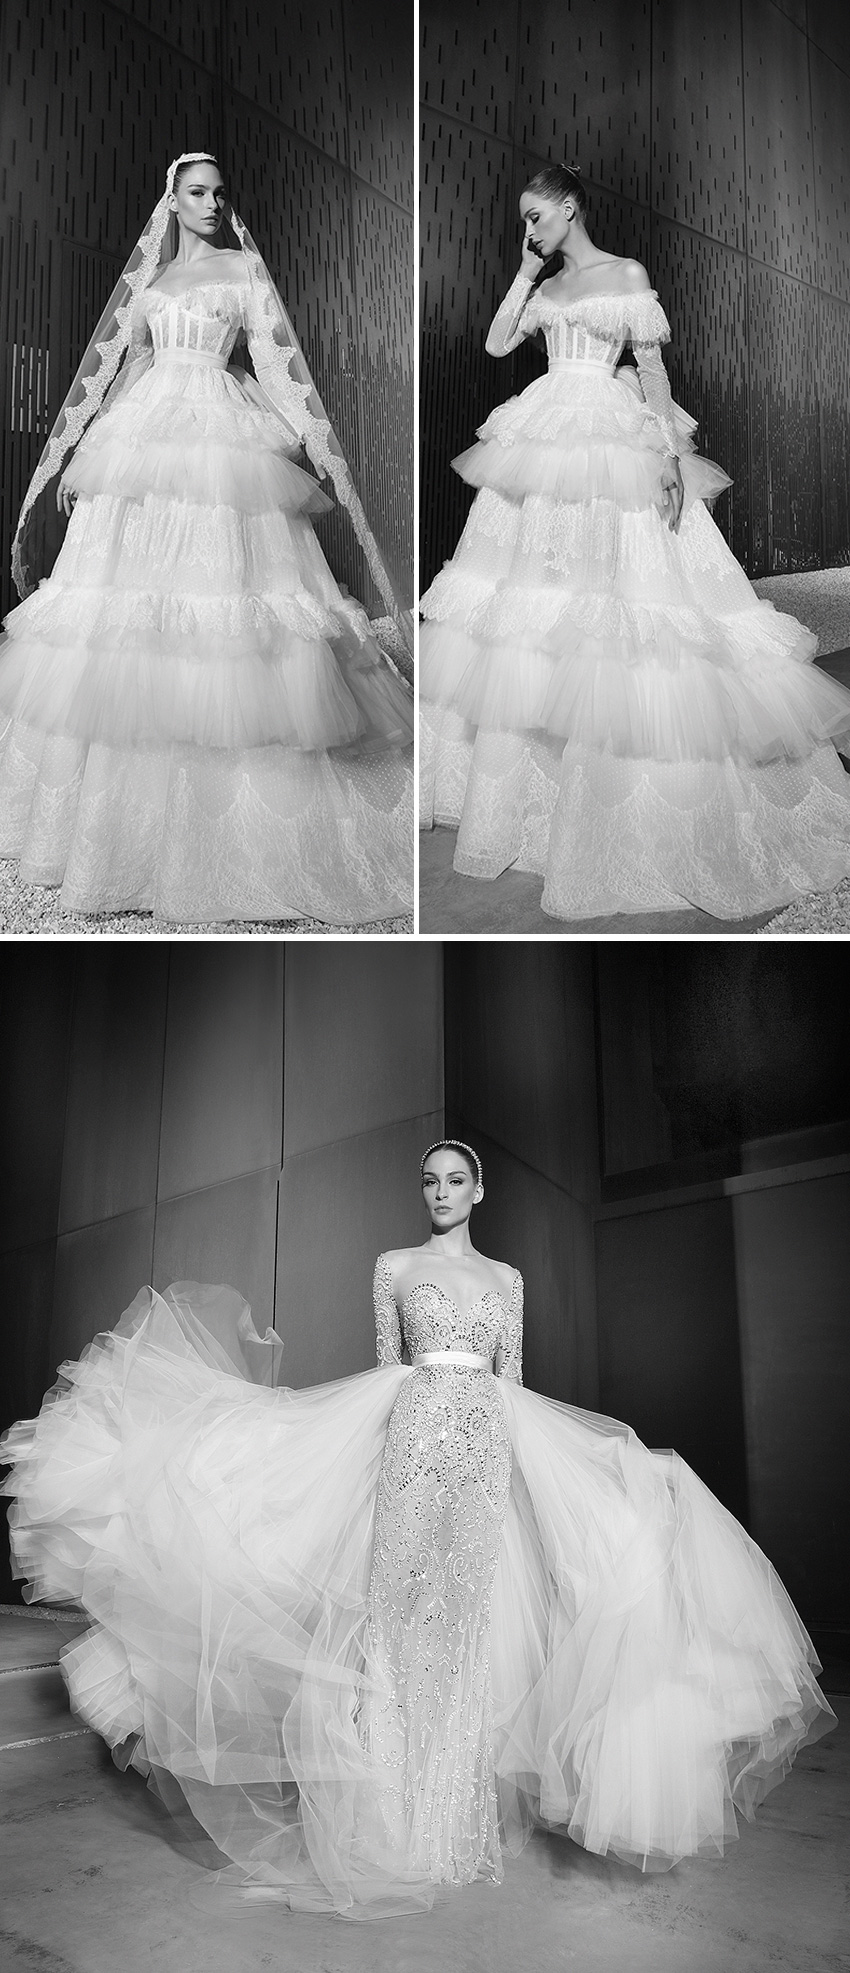 Ruffle silk tulle voluminous dresses in Zuhair Murad Spring 2022 bridal collection